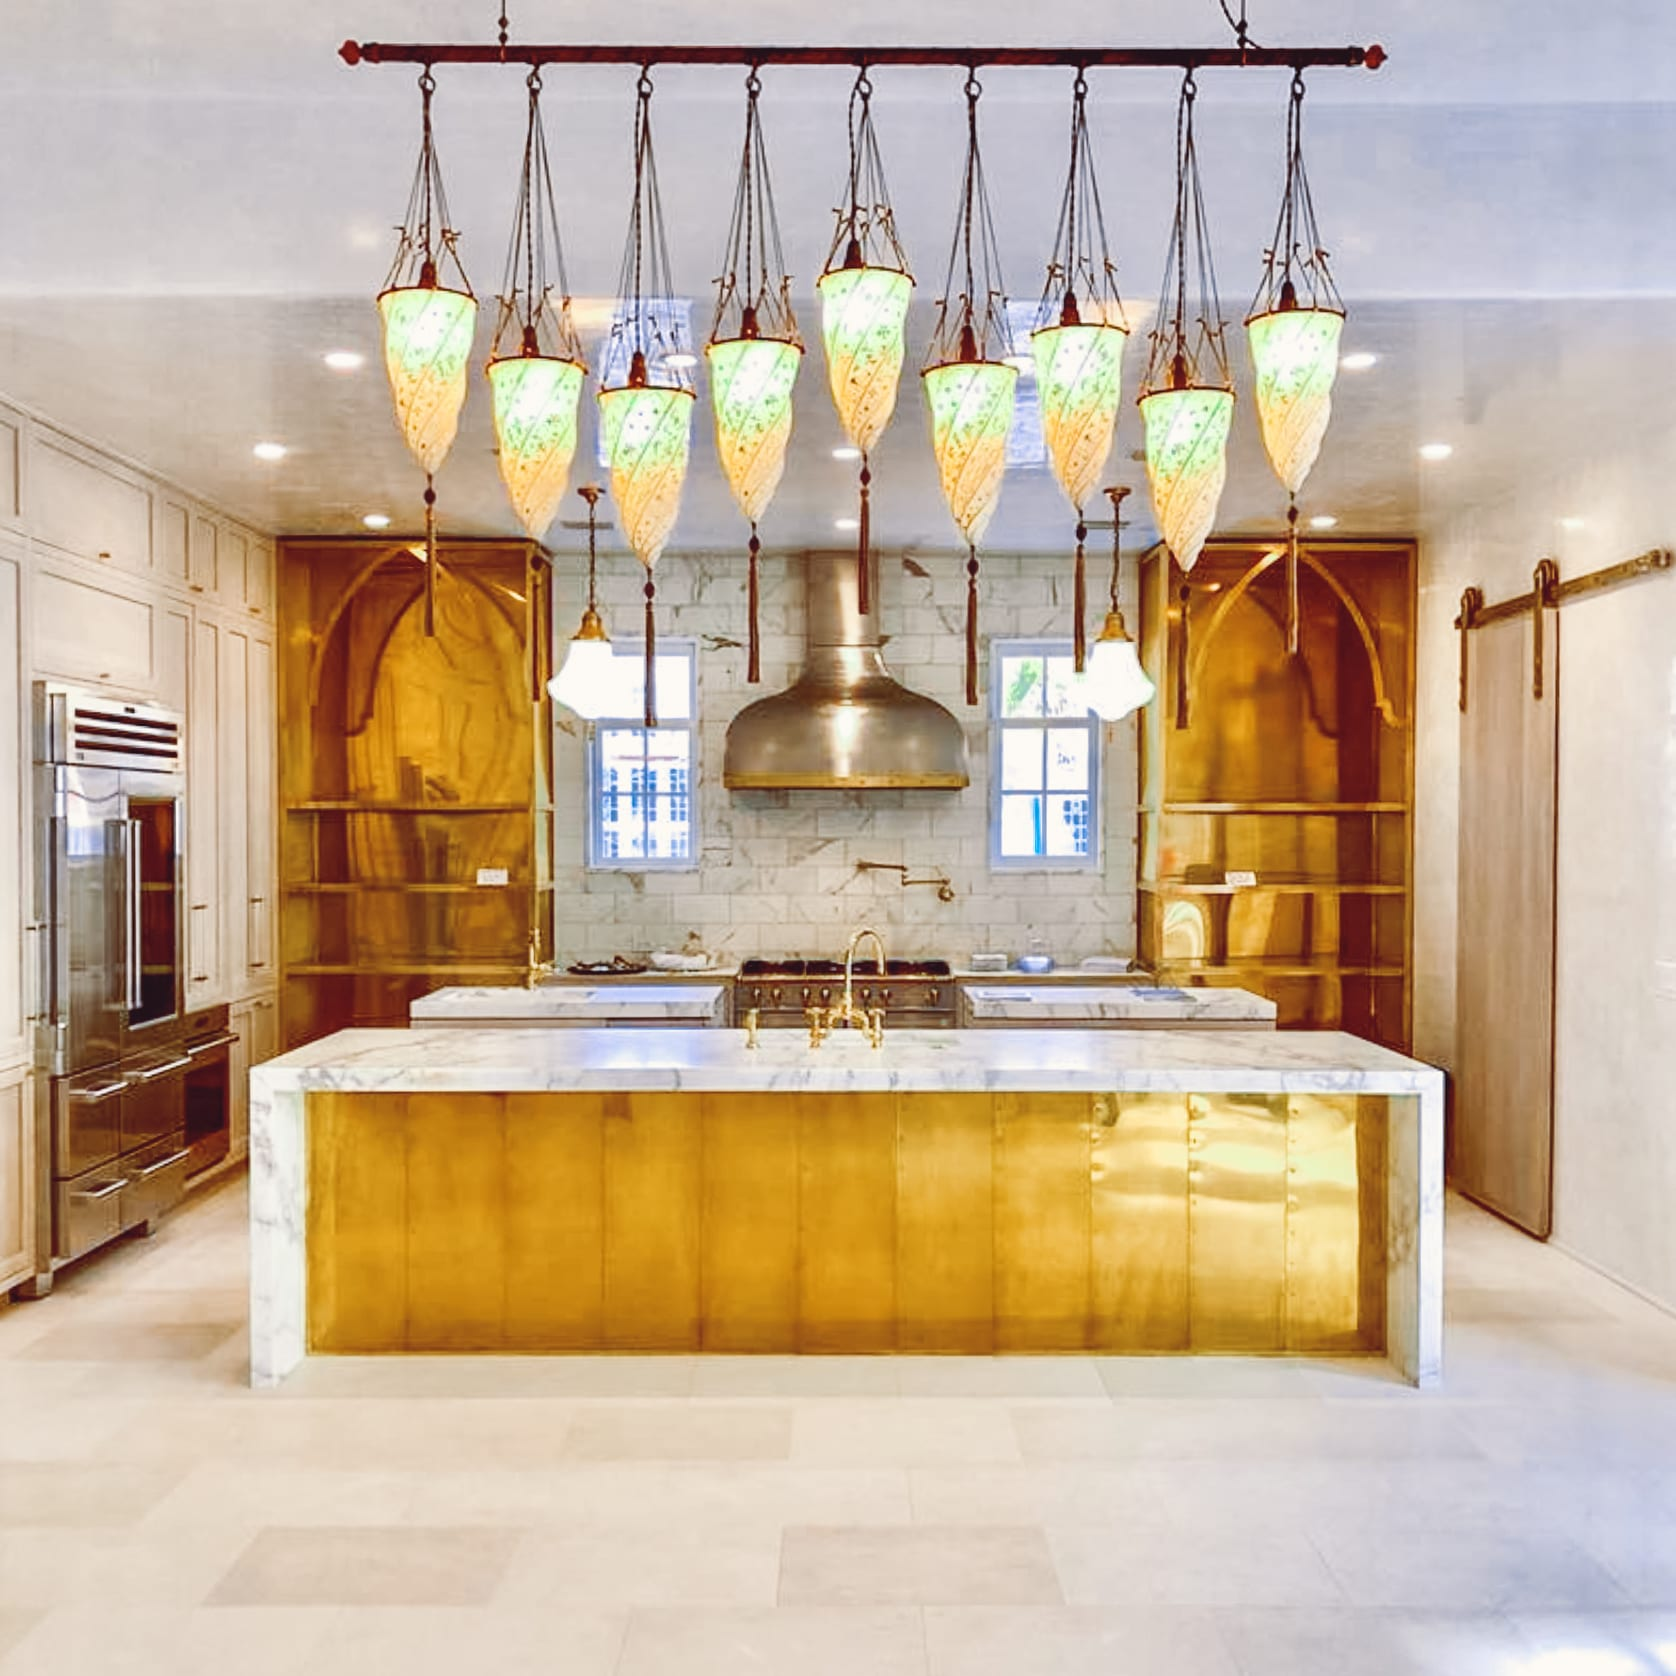 Oak and Brass Kitchen full view